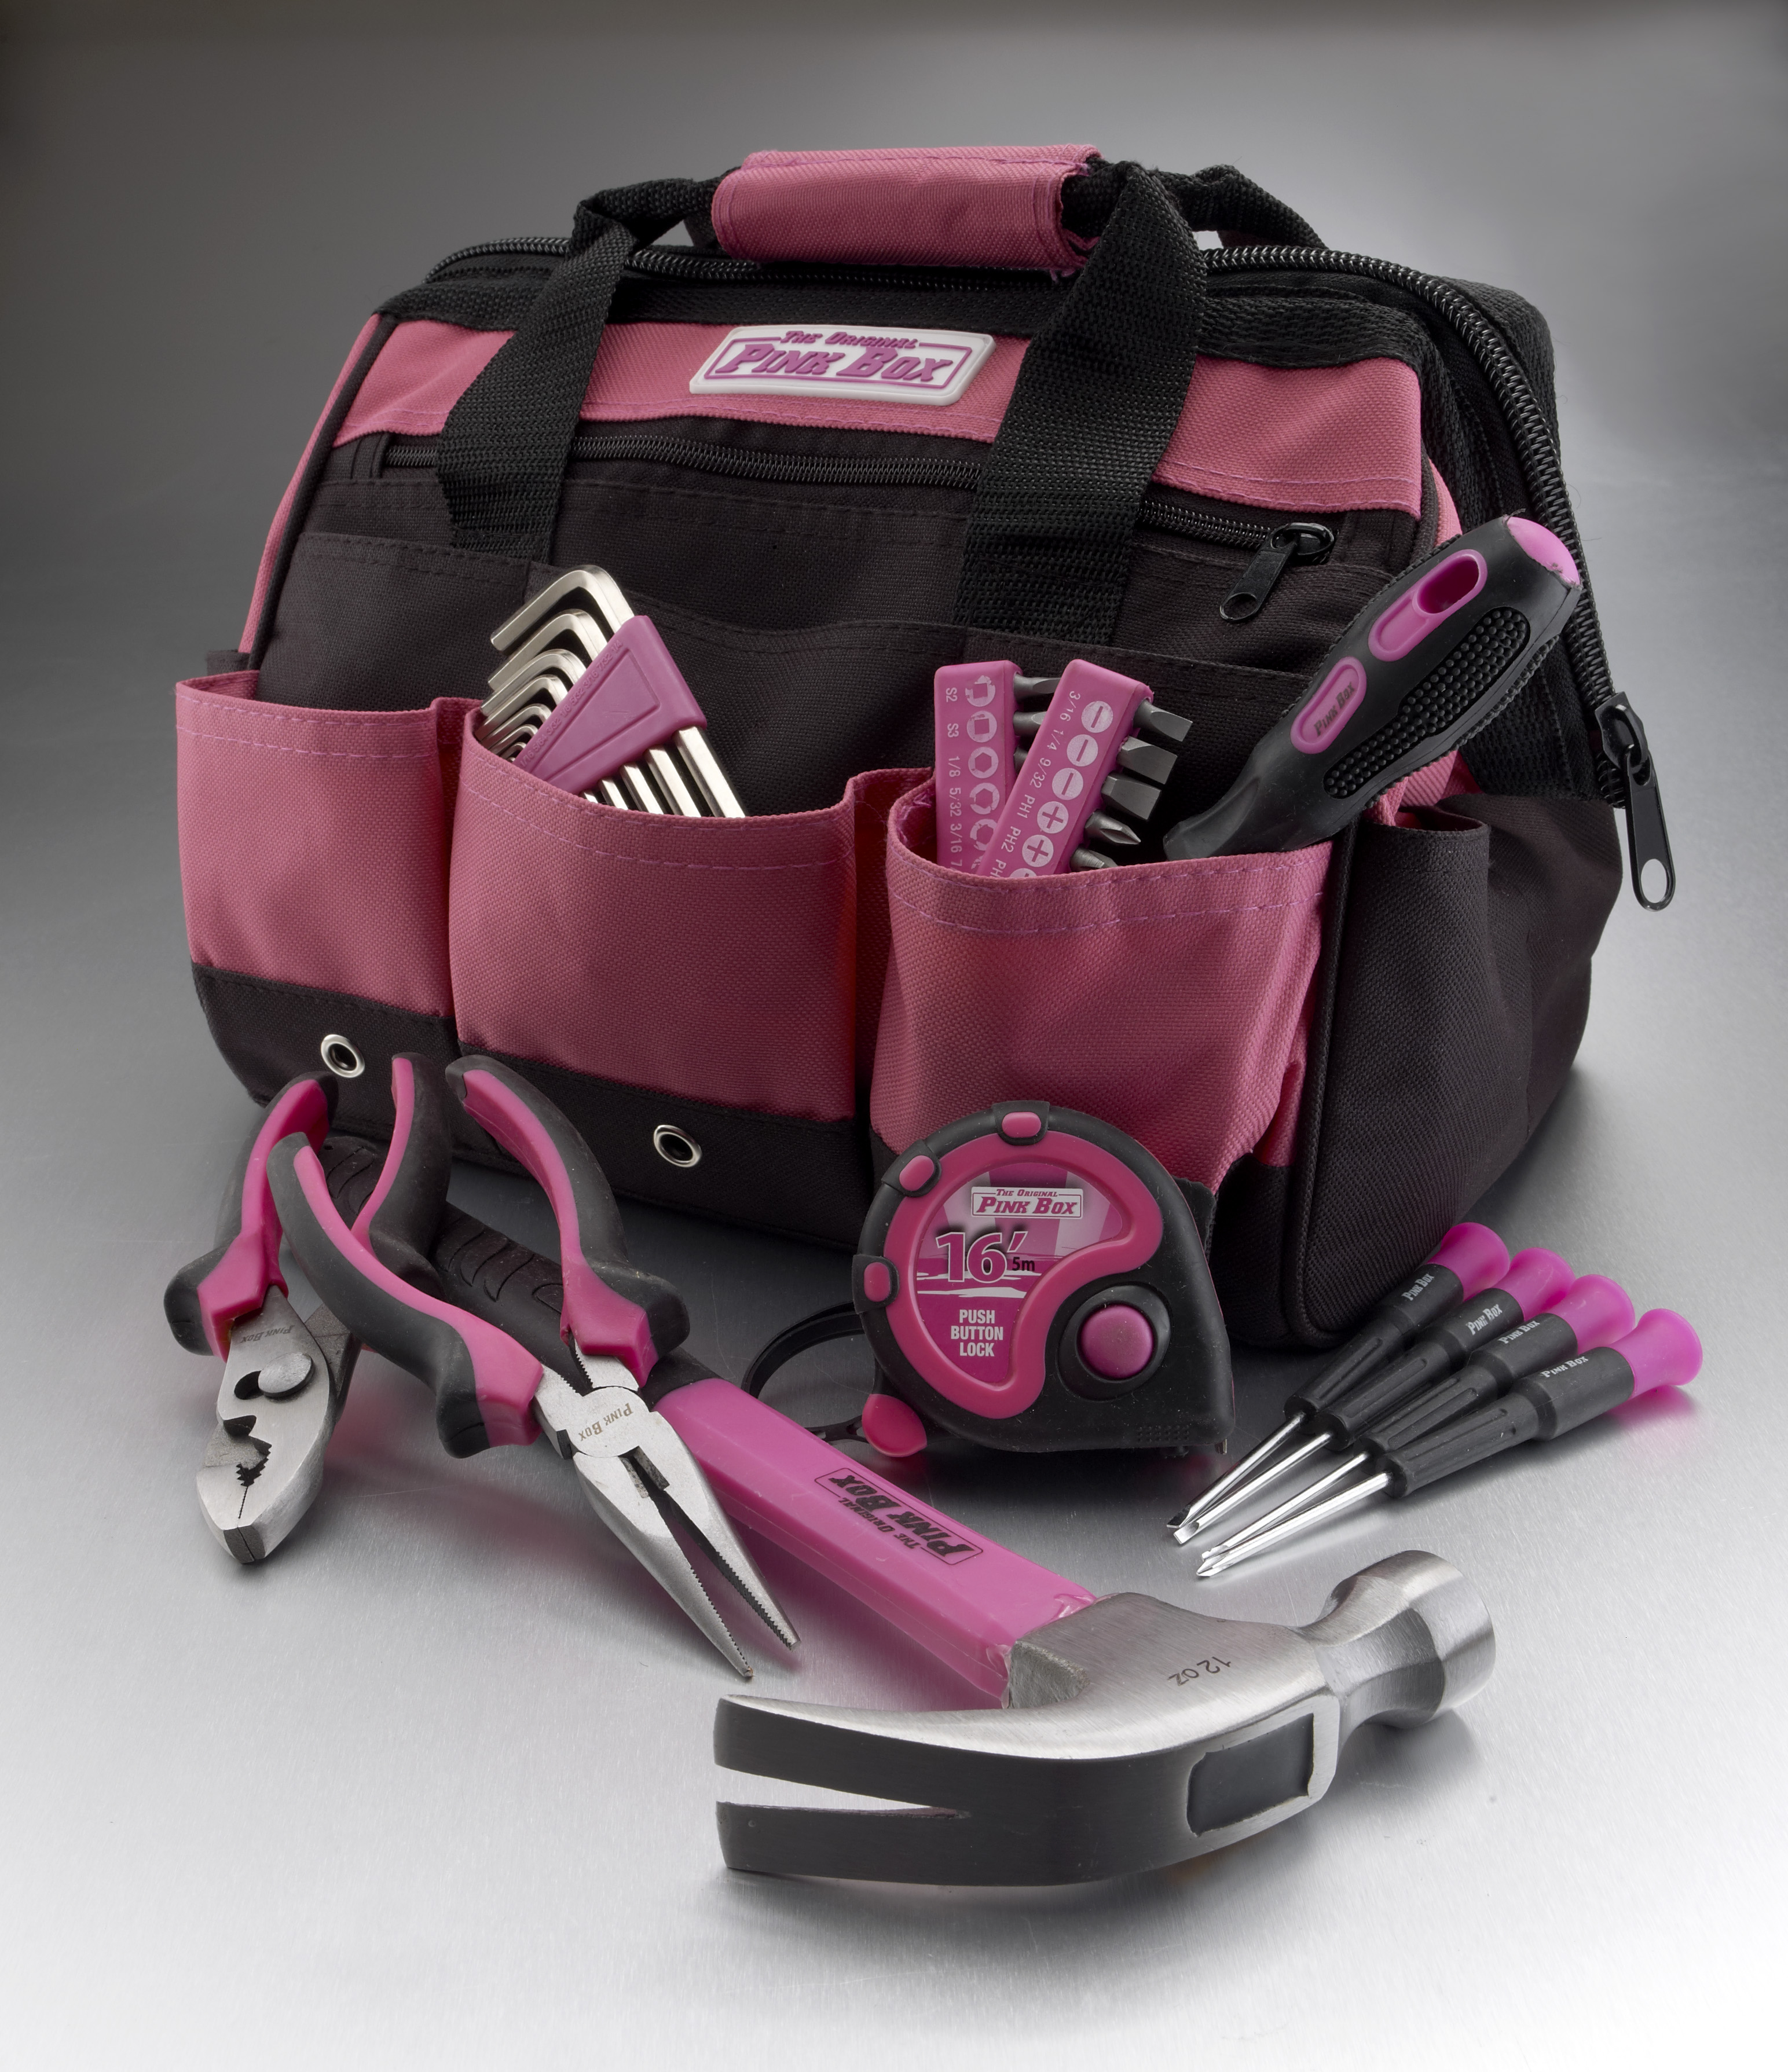 The Original Pink Box PB30TBK 30-Piece Home Tool Set, w  12-Inch Tool Bag, Pink by Cala Industries Inc